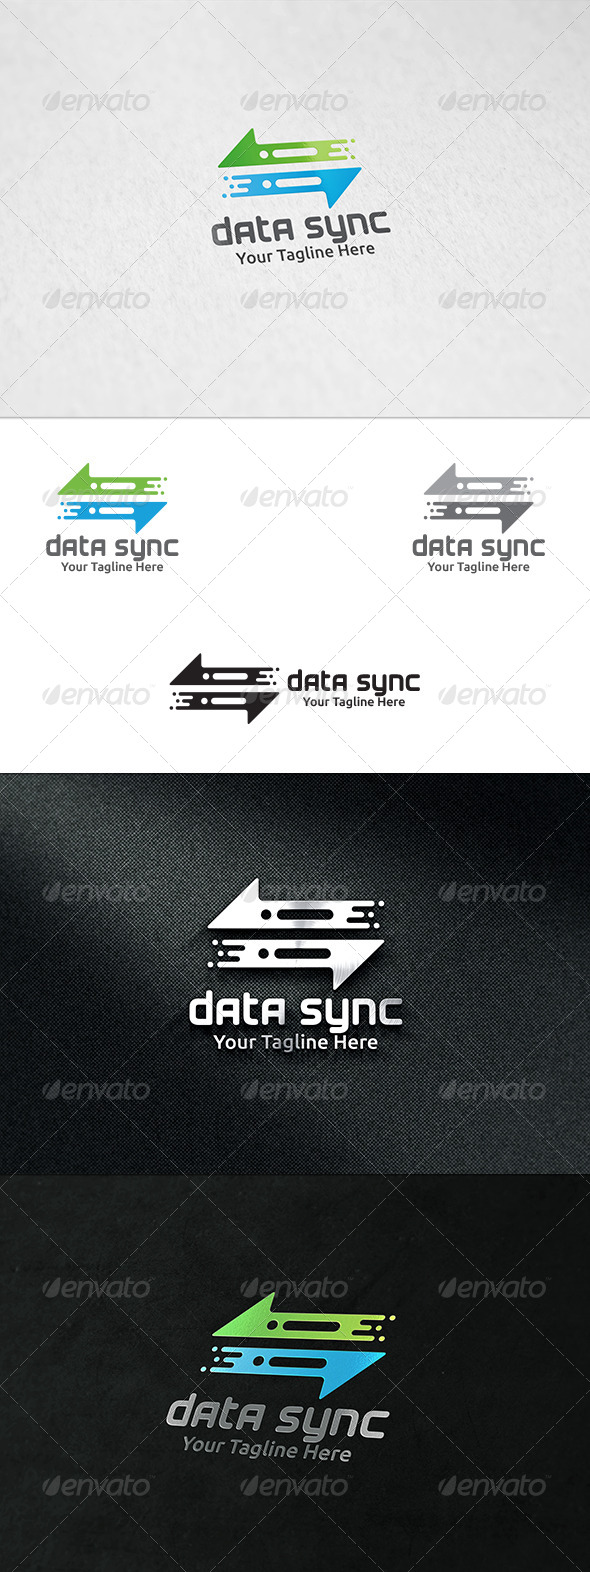 GraphicRiver Data Sync Logo Template 8618655